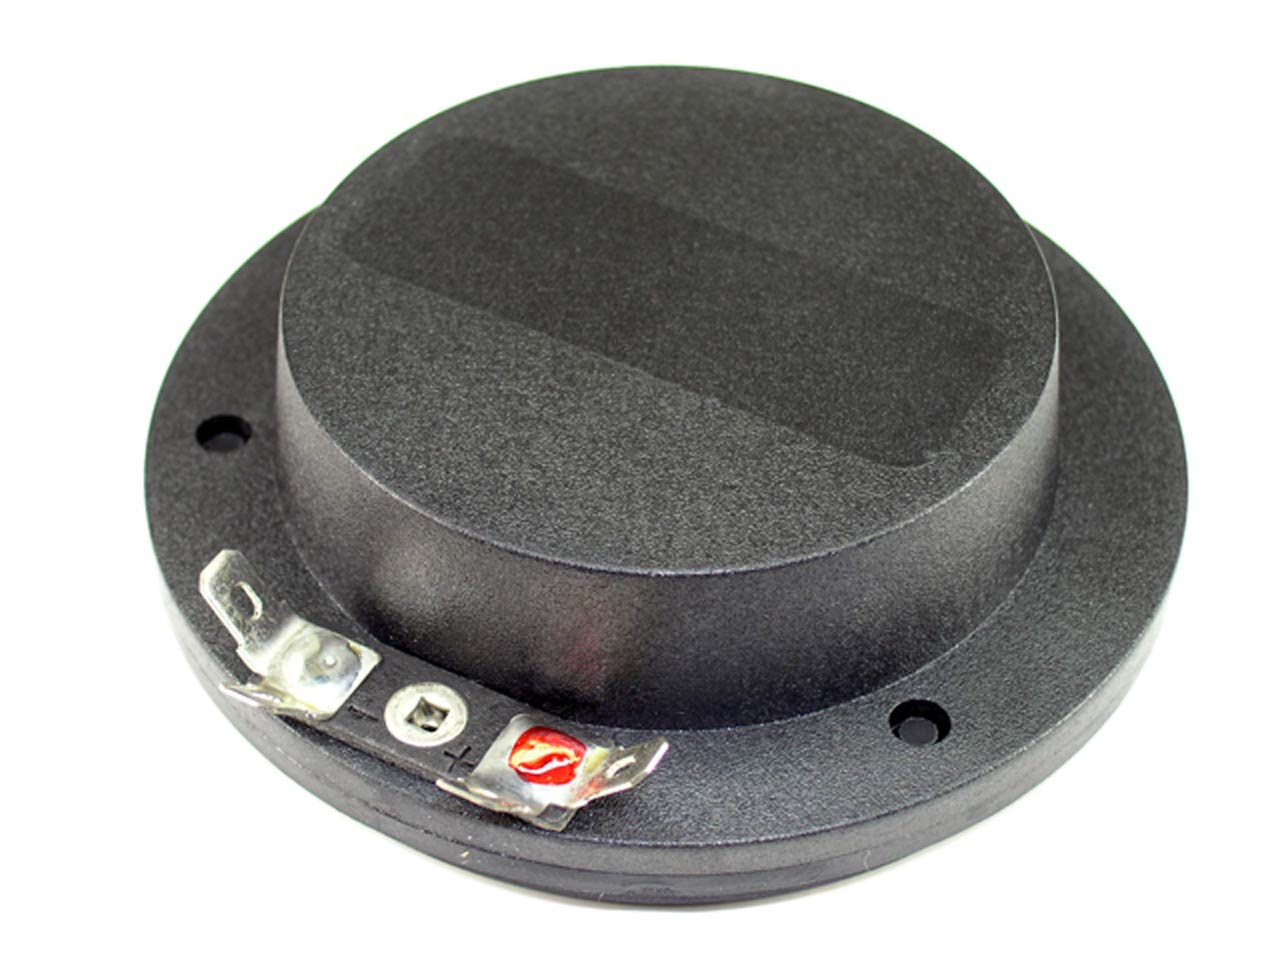 SS Audio Eminence Speaker Diaphragm